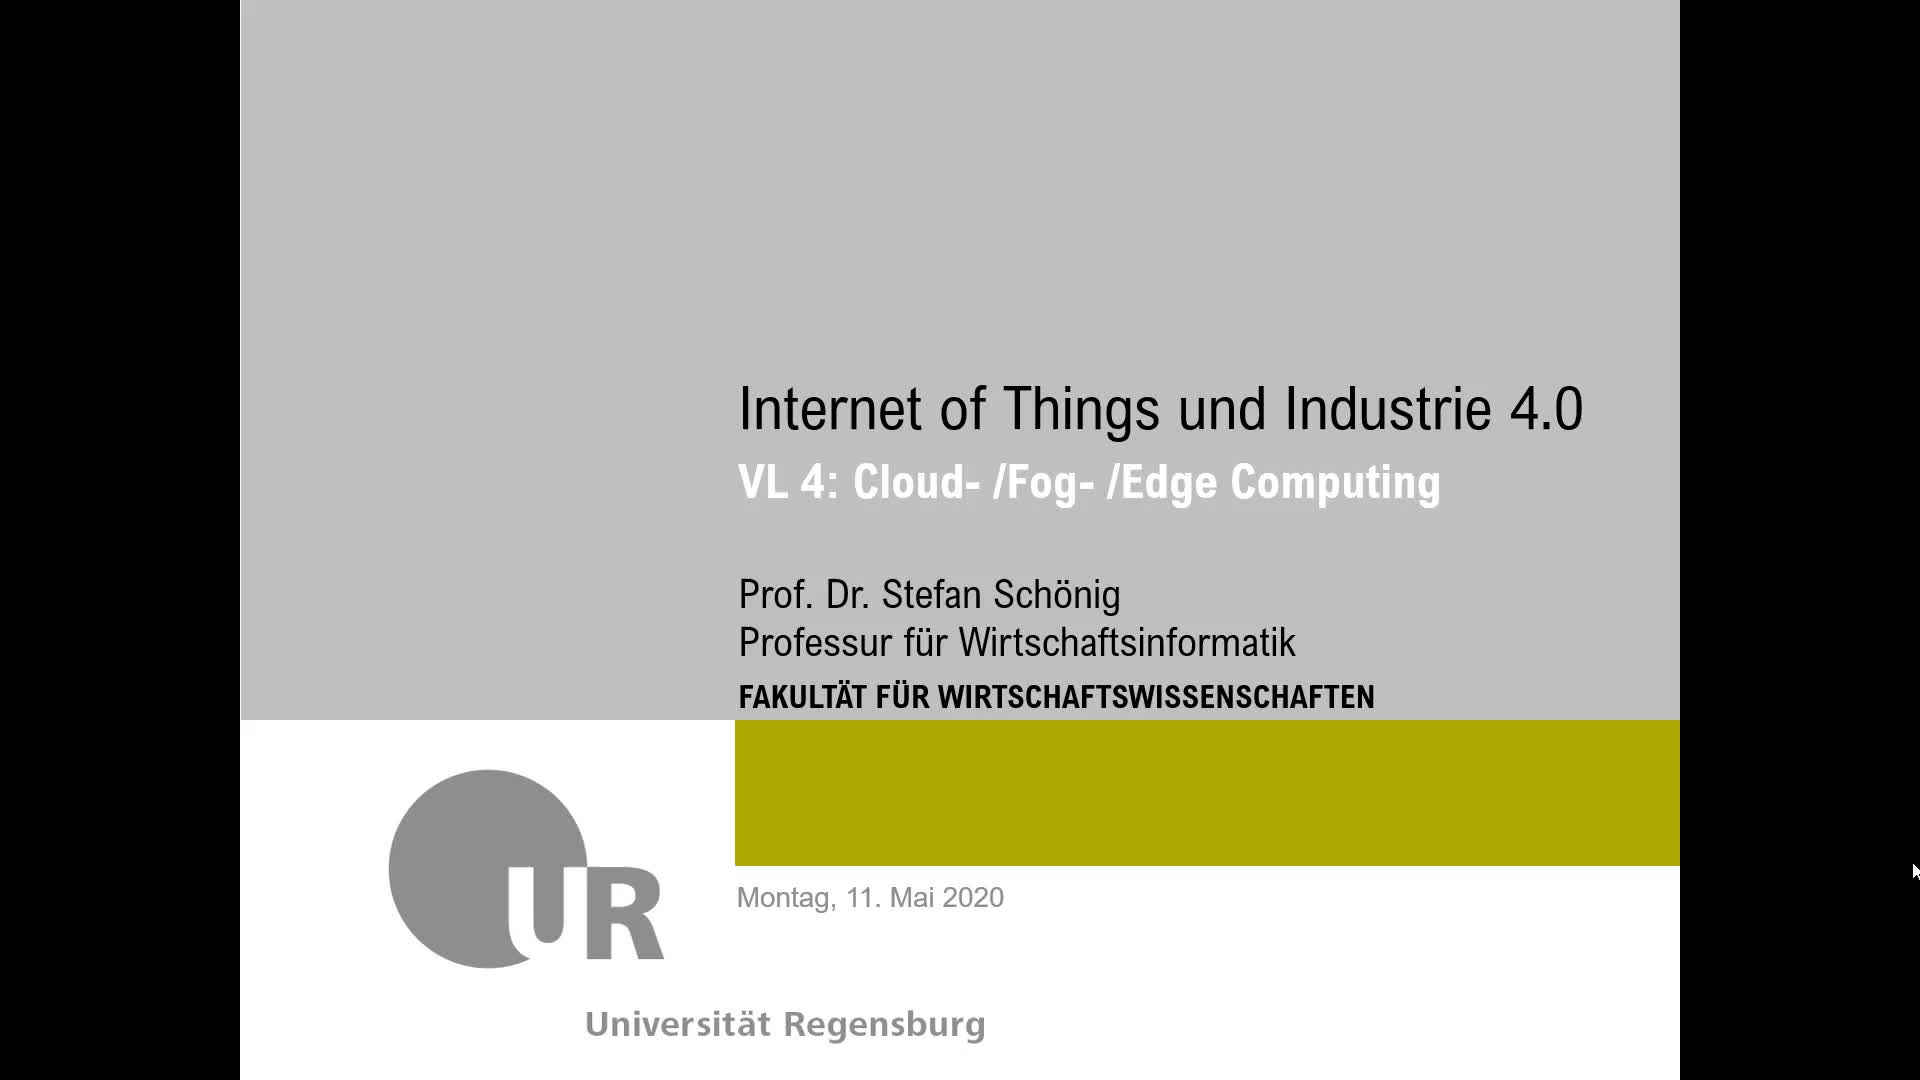 SS 2020 - Internet of Things und Industrie 4.0 - Kapitel 4 (Infrastrukturen - Cloud Computing)